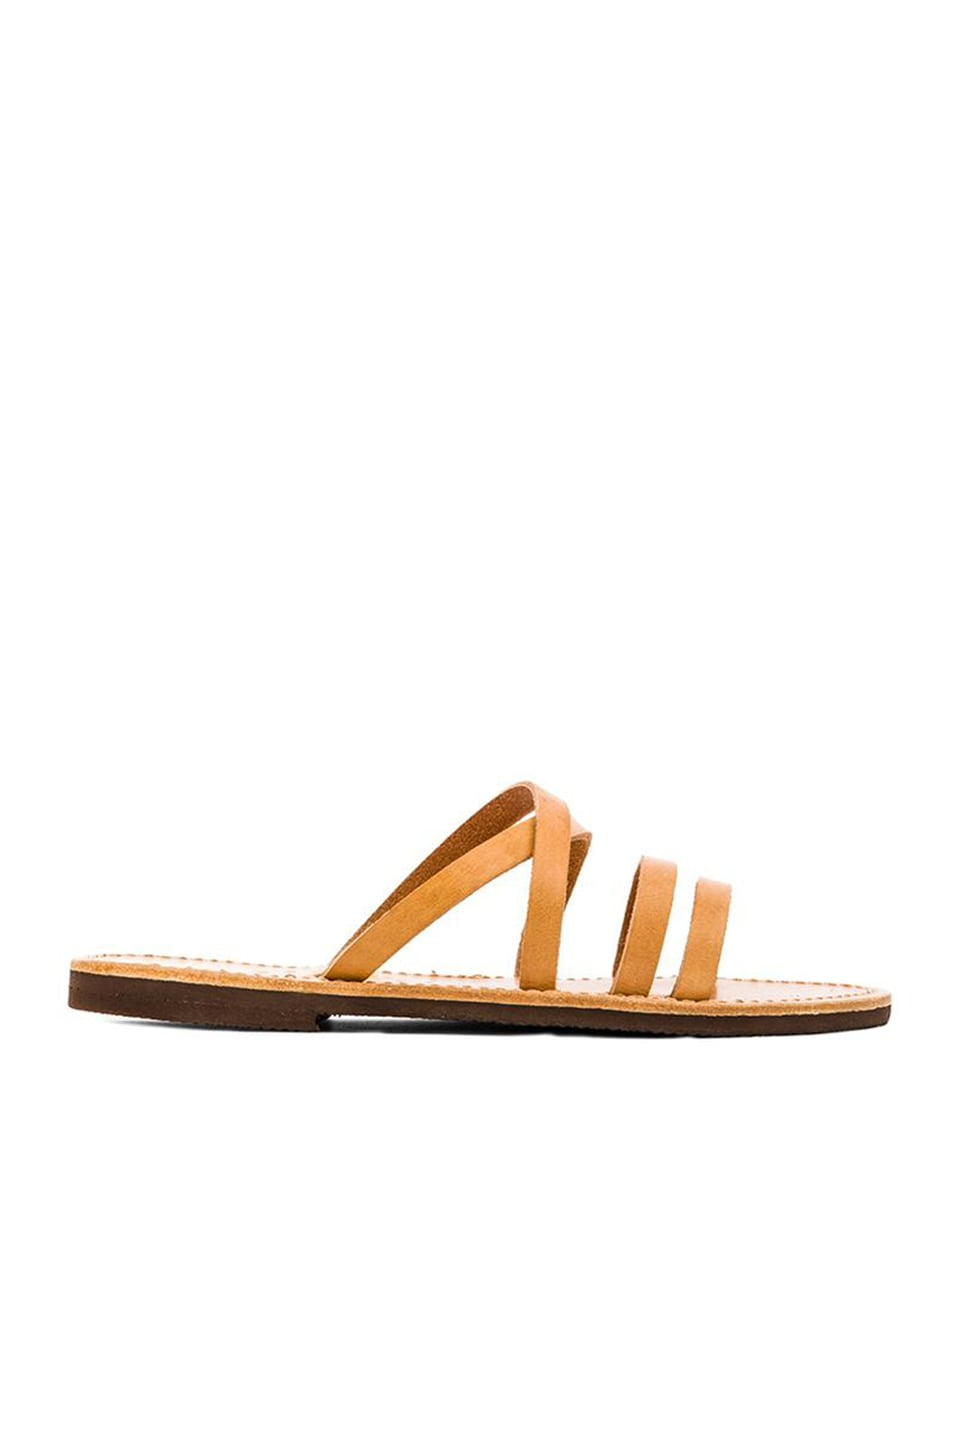 isapera Mersyni Sandal in Natural